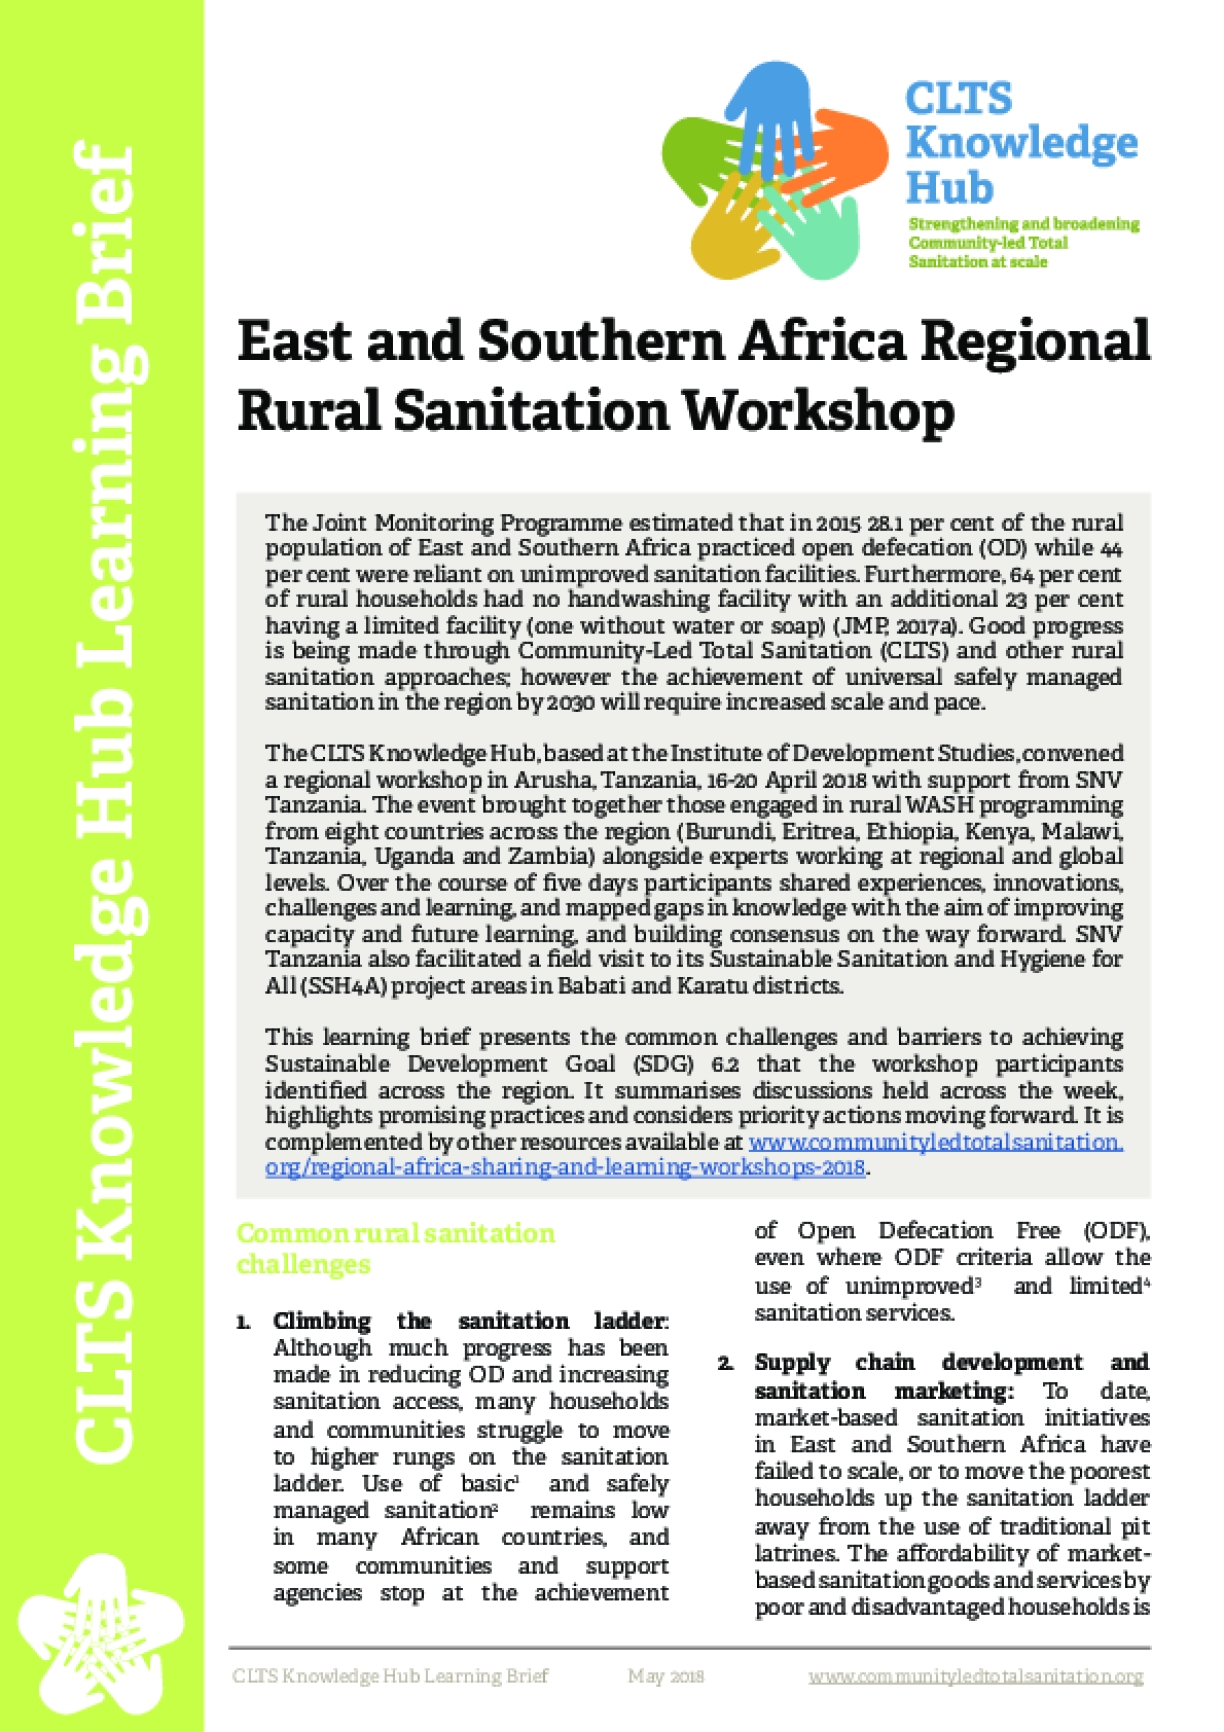 East and Southern Africa Regional Rural Sanitation Workshop